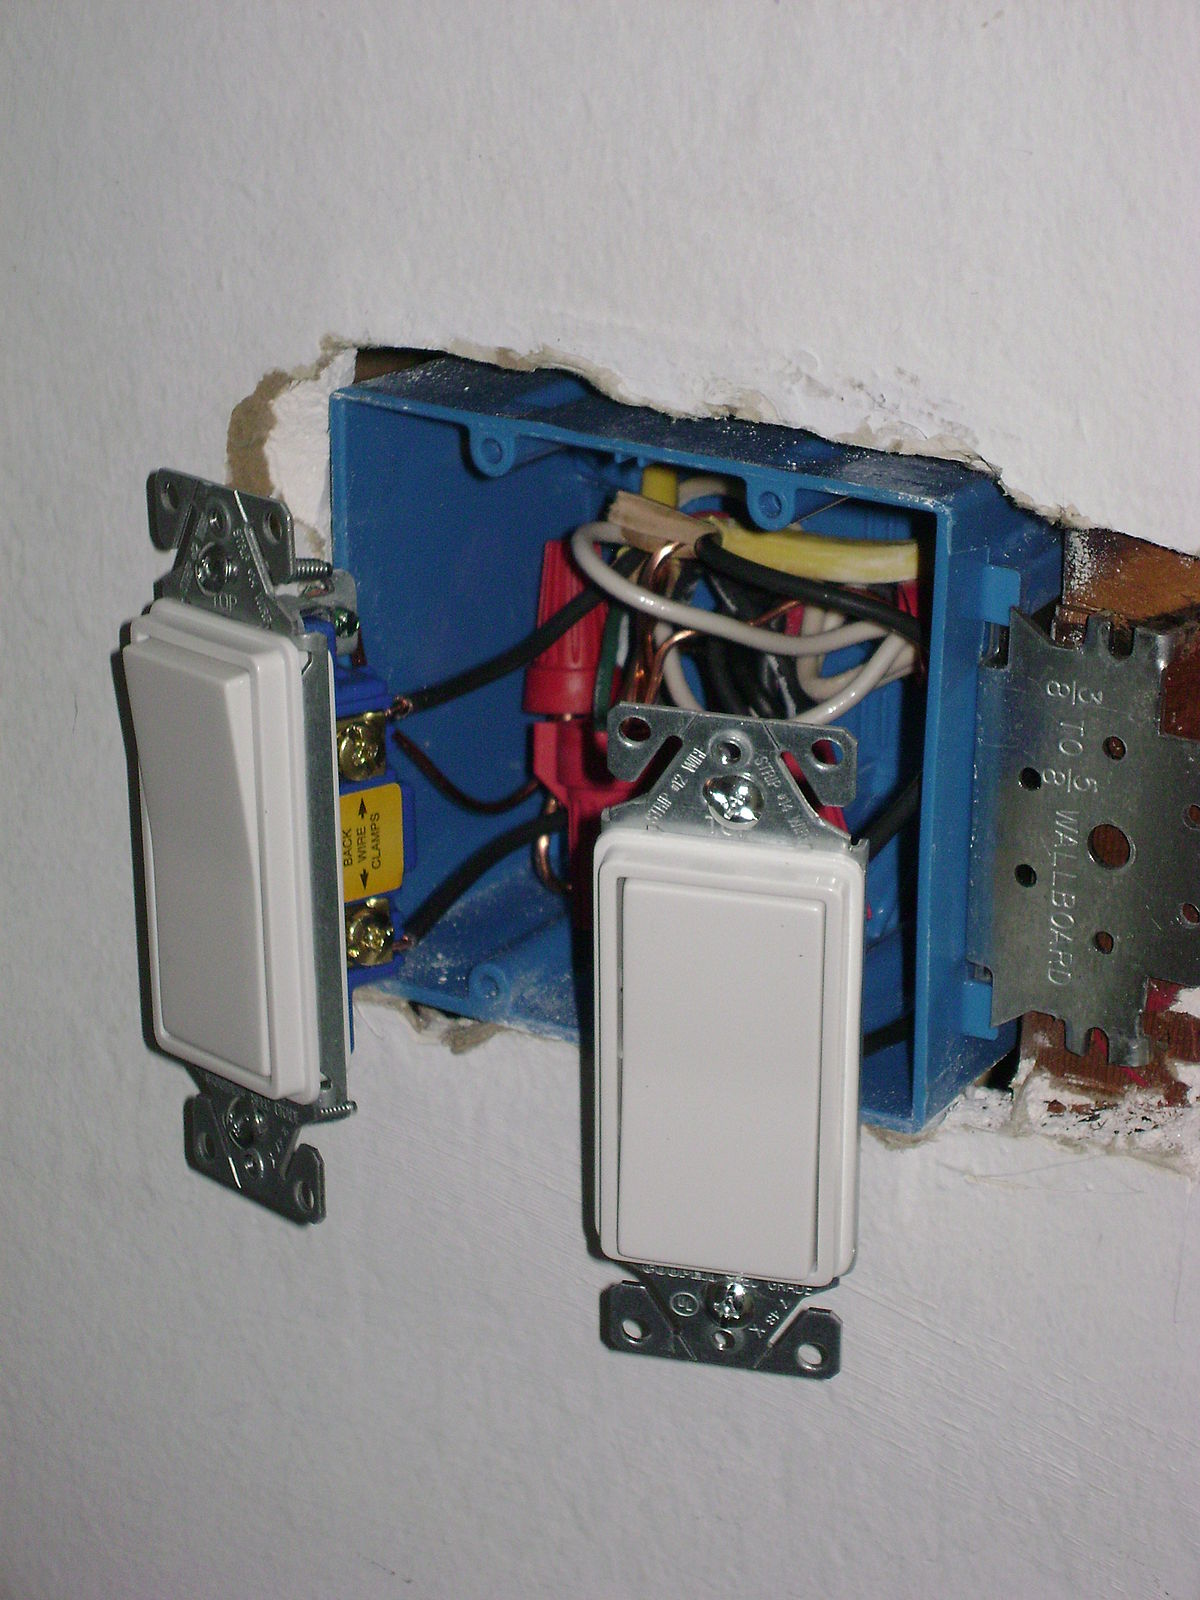 Light Switch Wikipedia Merge Existing Single Circuit Into 3way The Garage